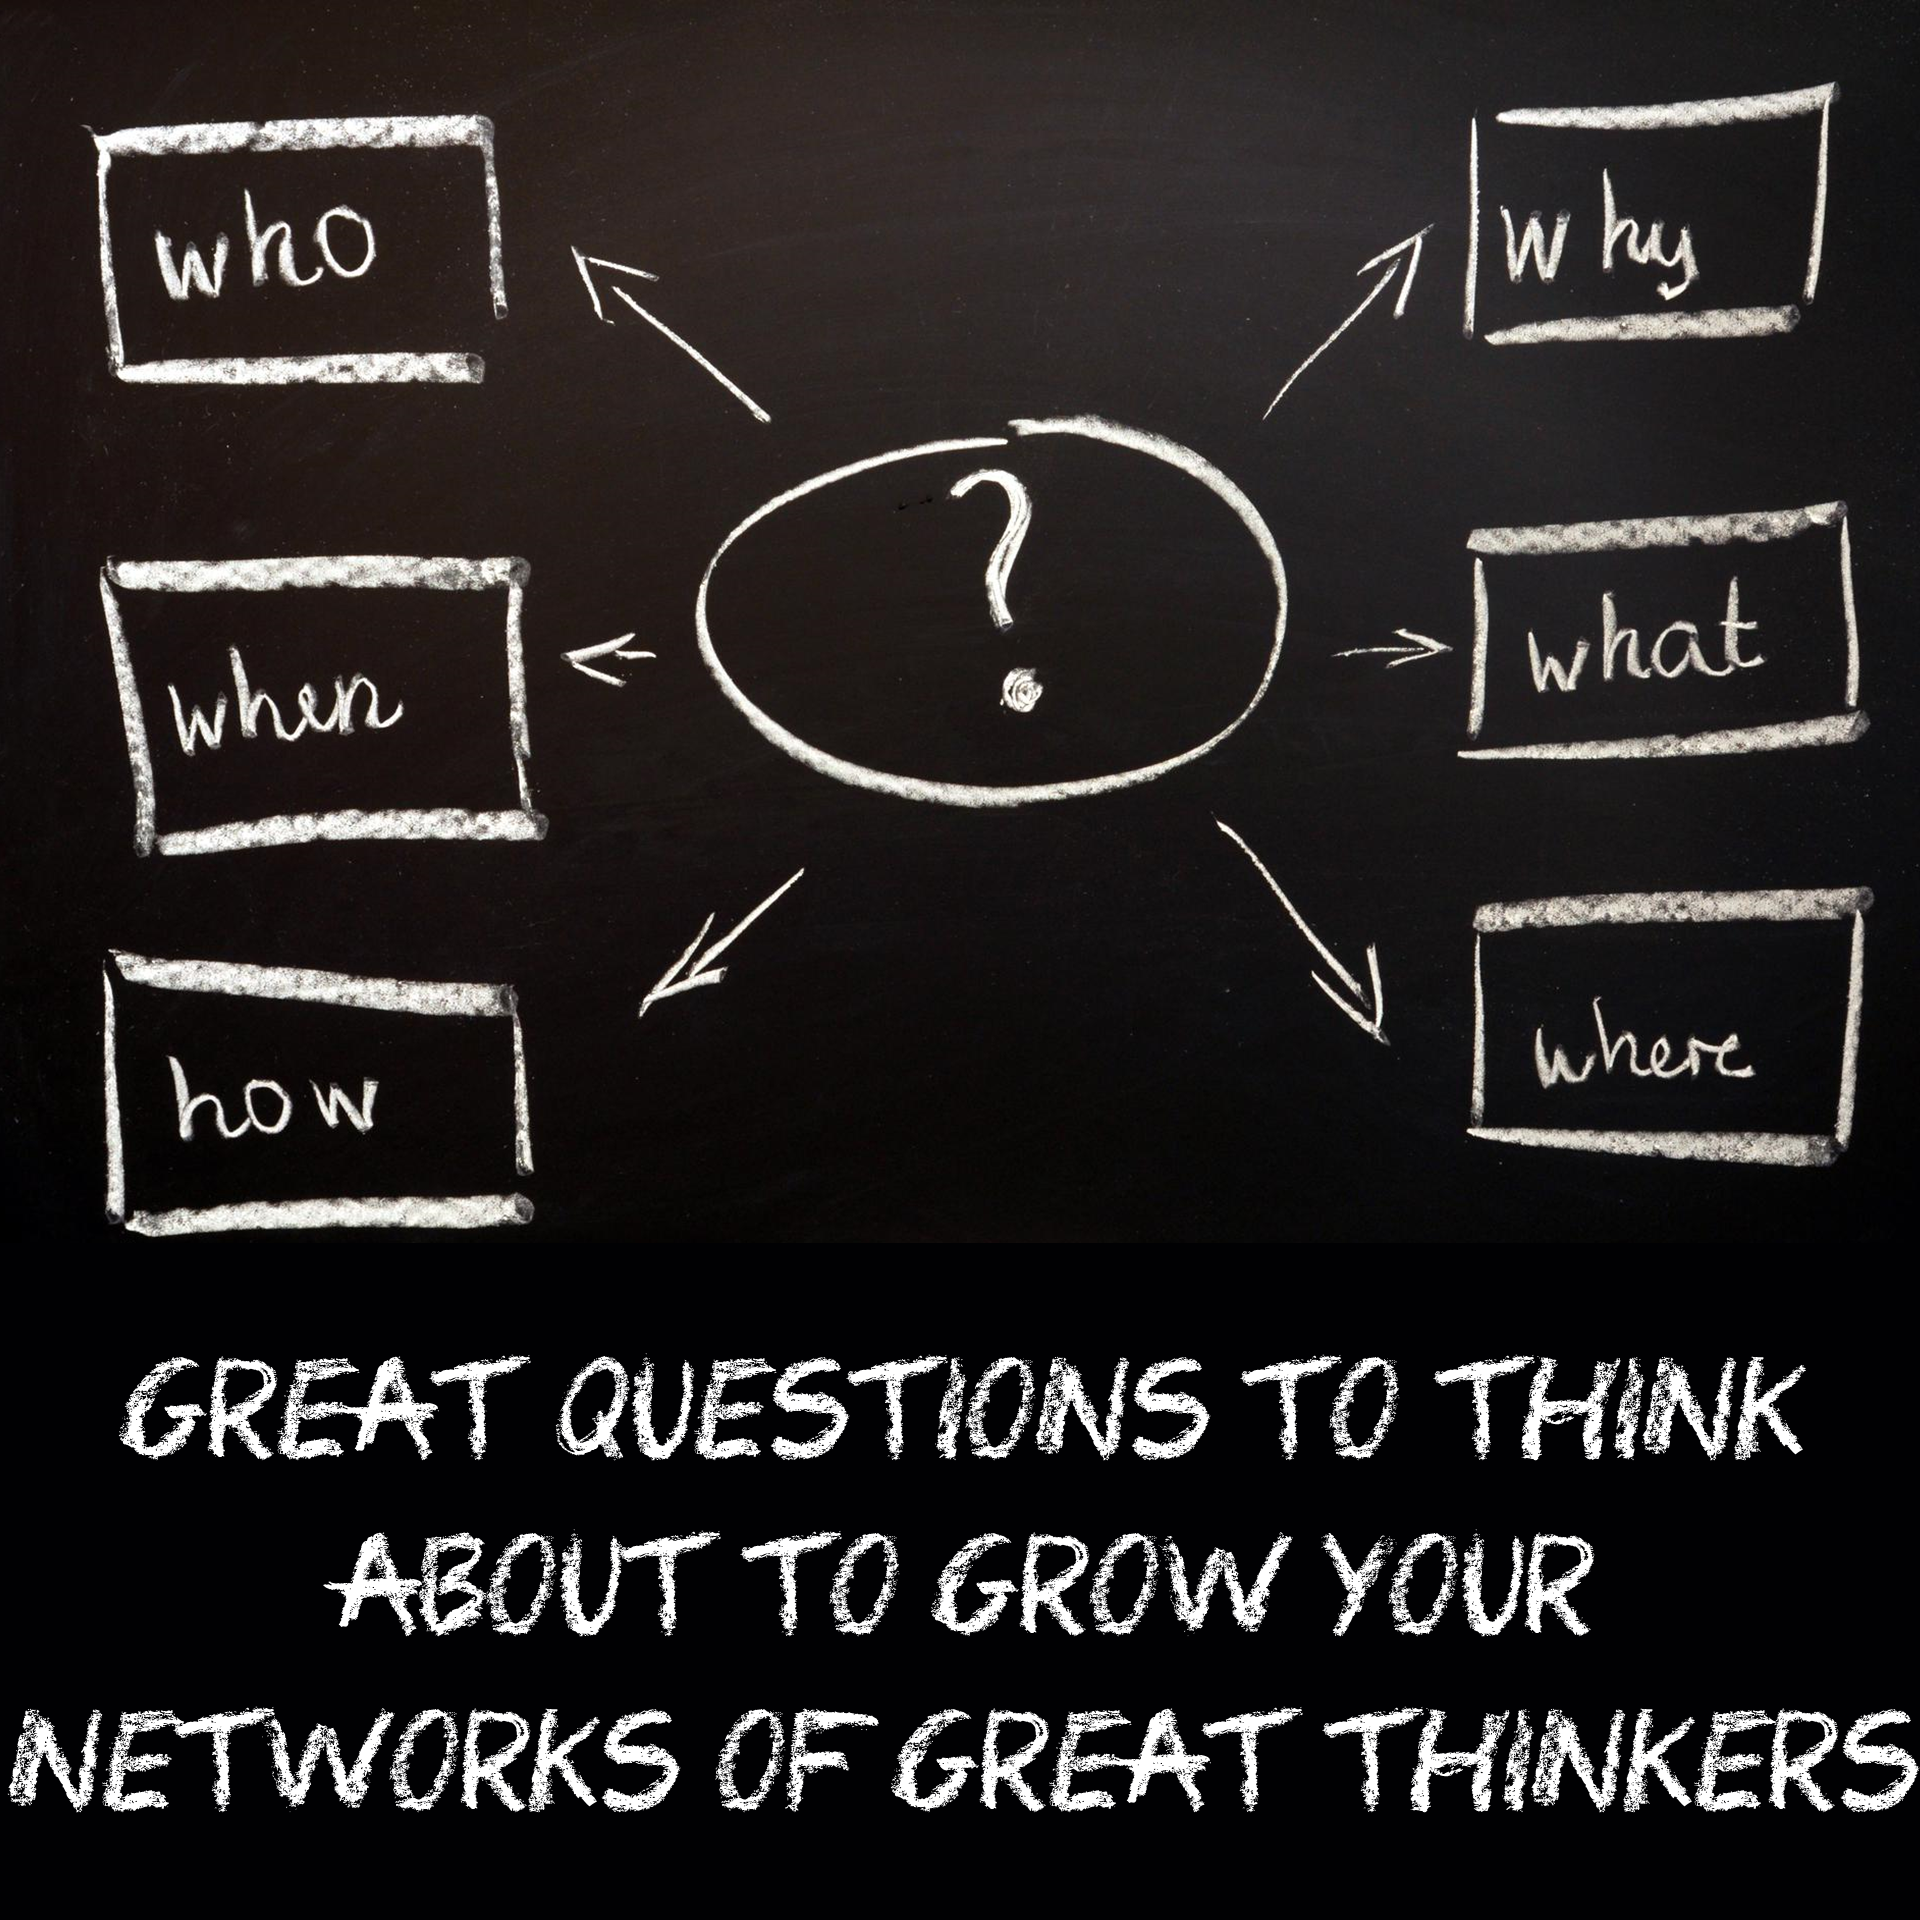 Great Questions for Planning to Grow Your Network Gerald Haman